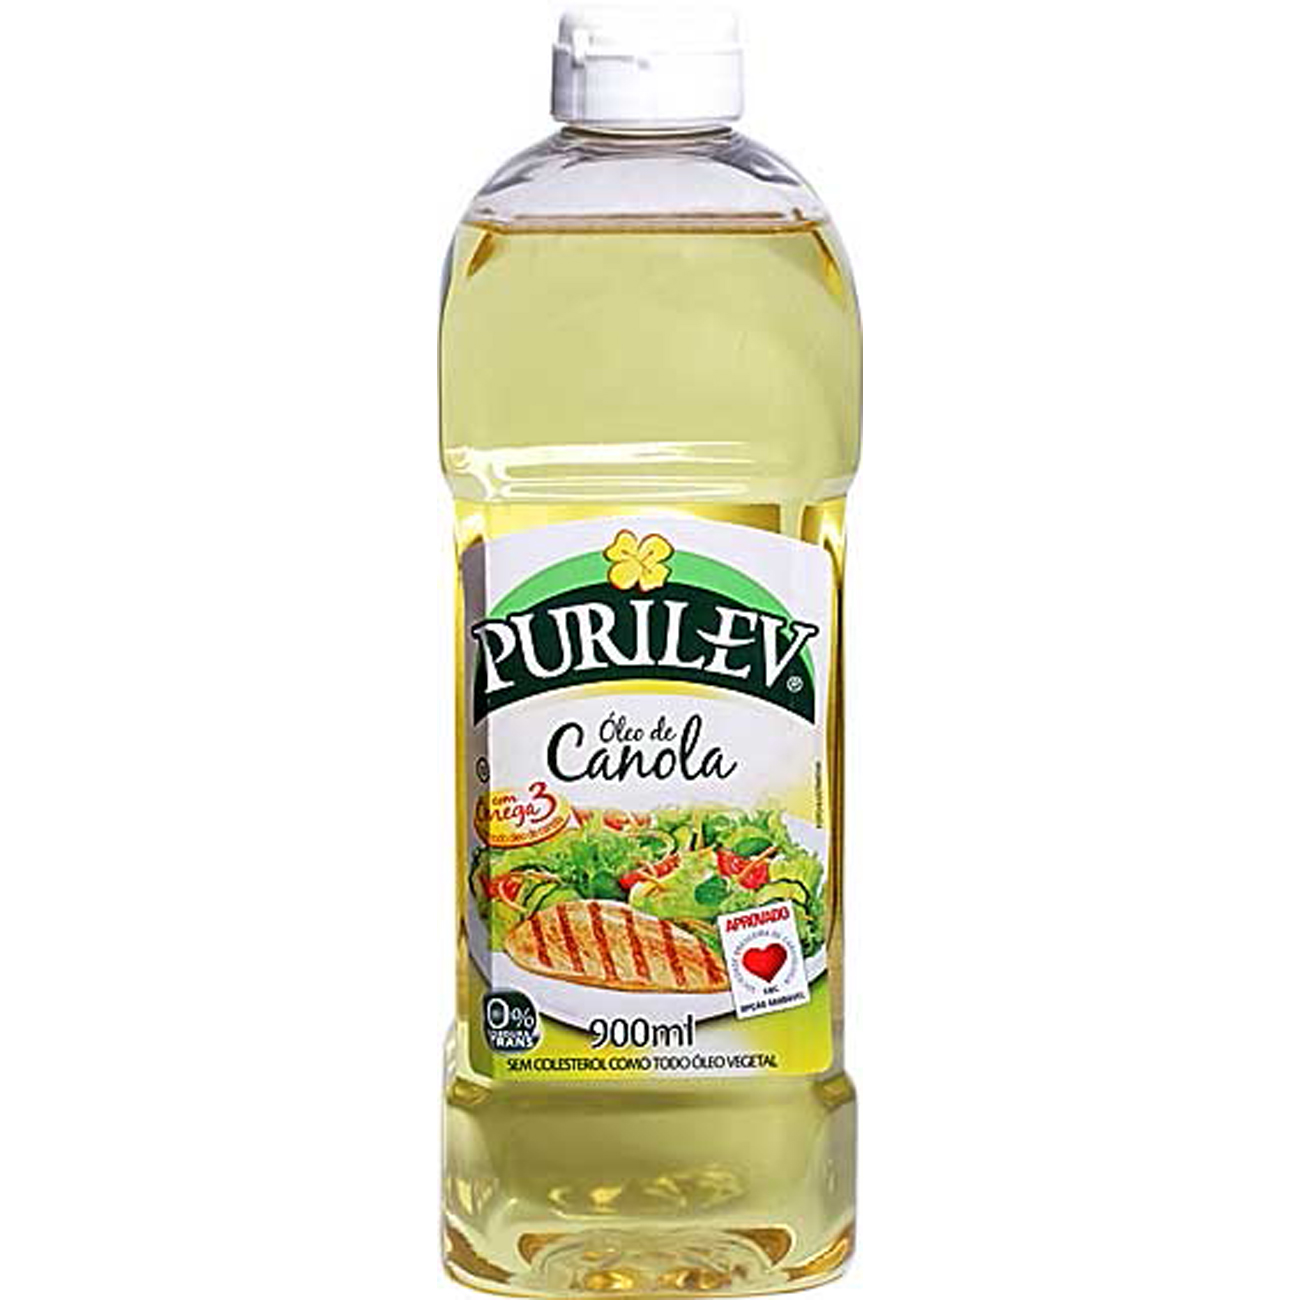 Oleo De Canola Purilev 900ml